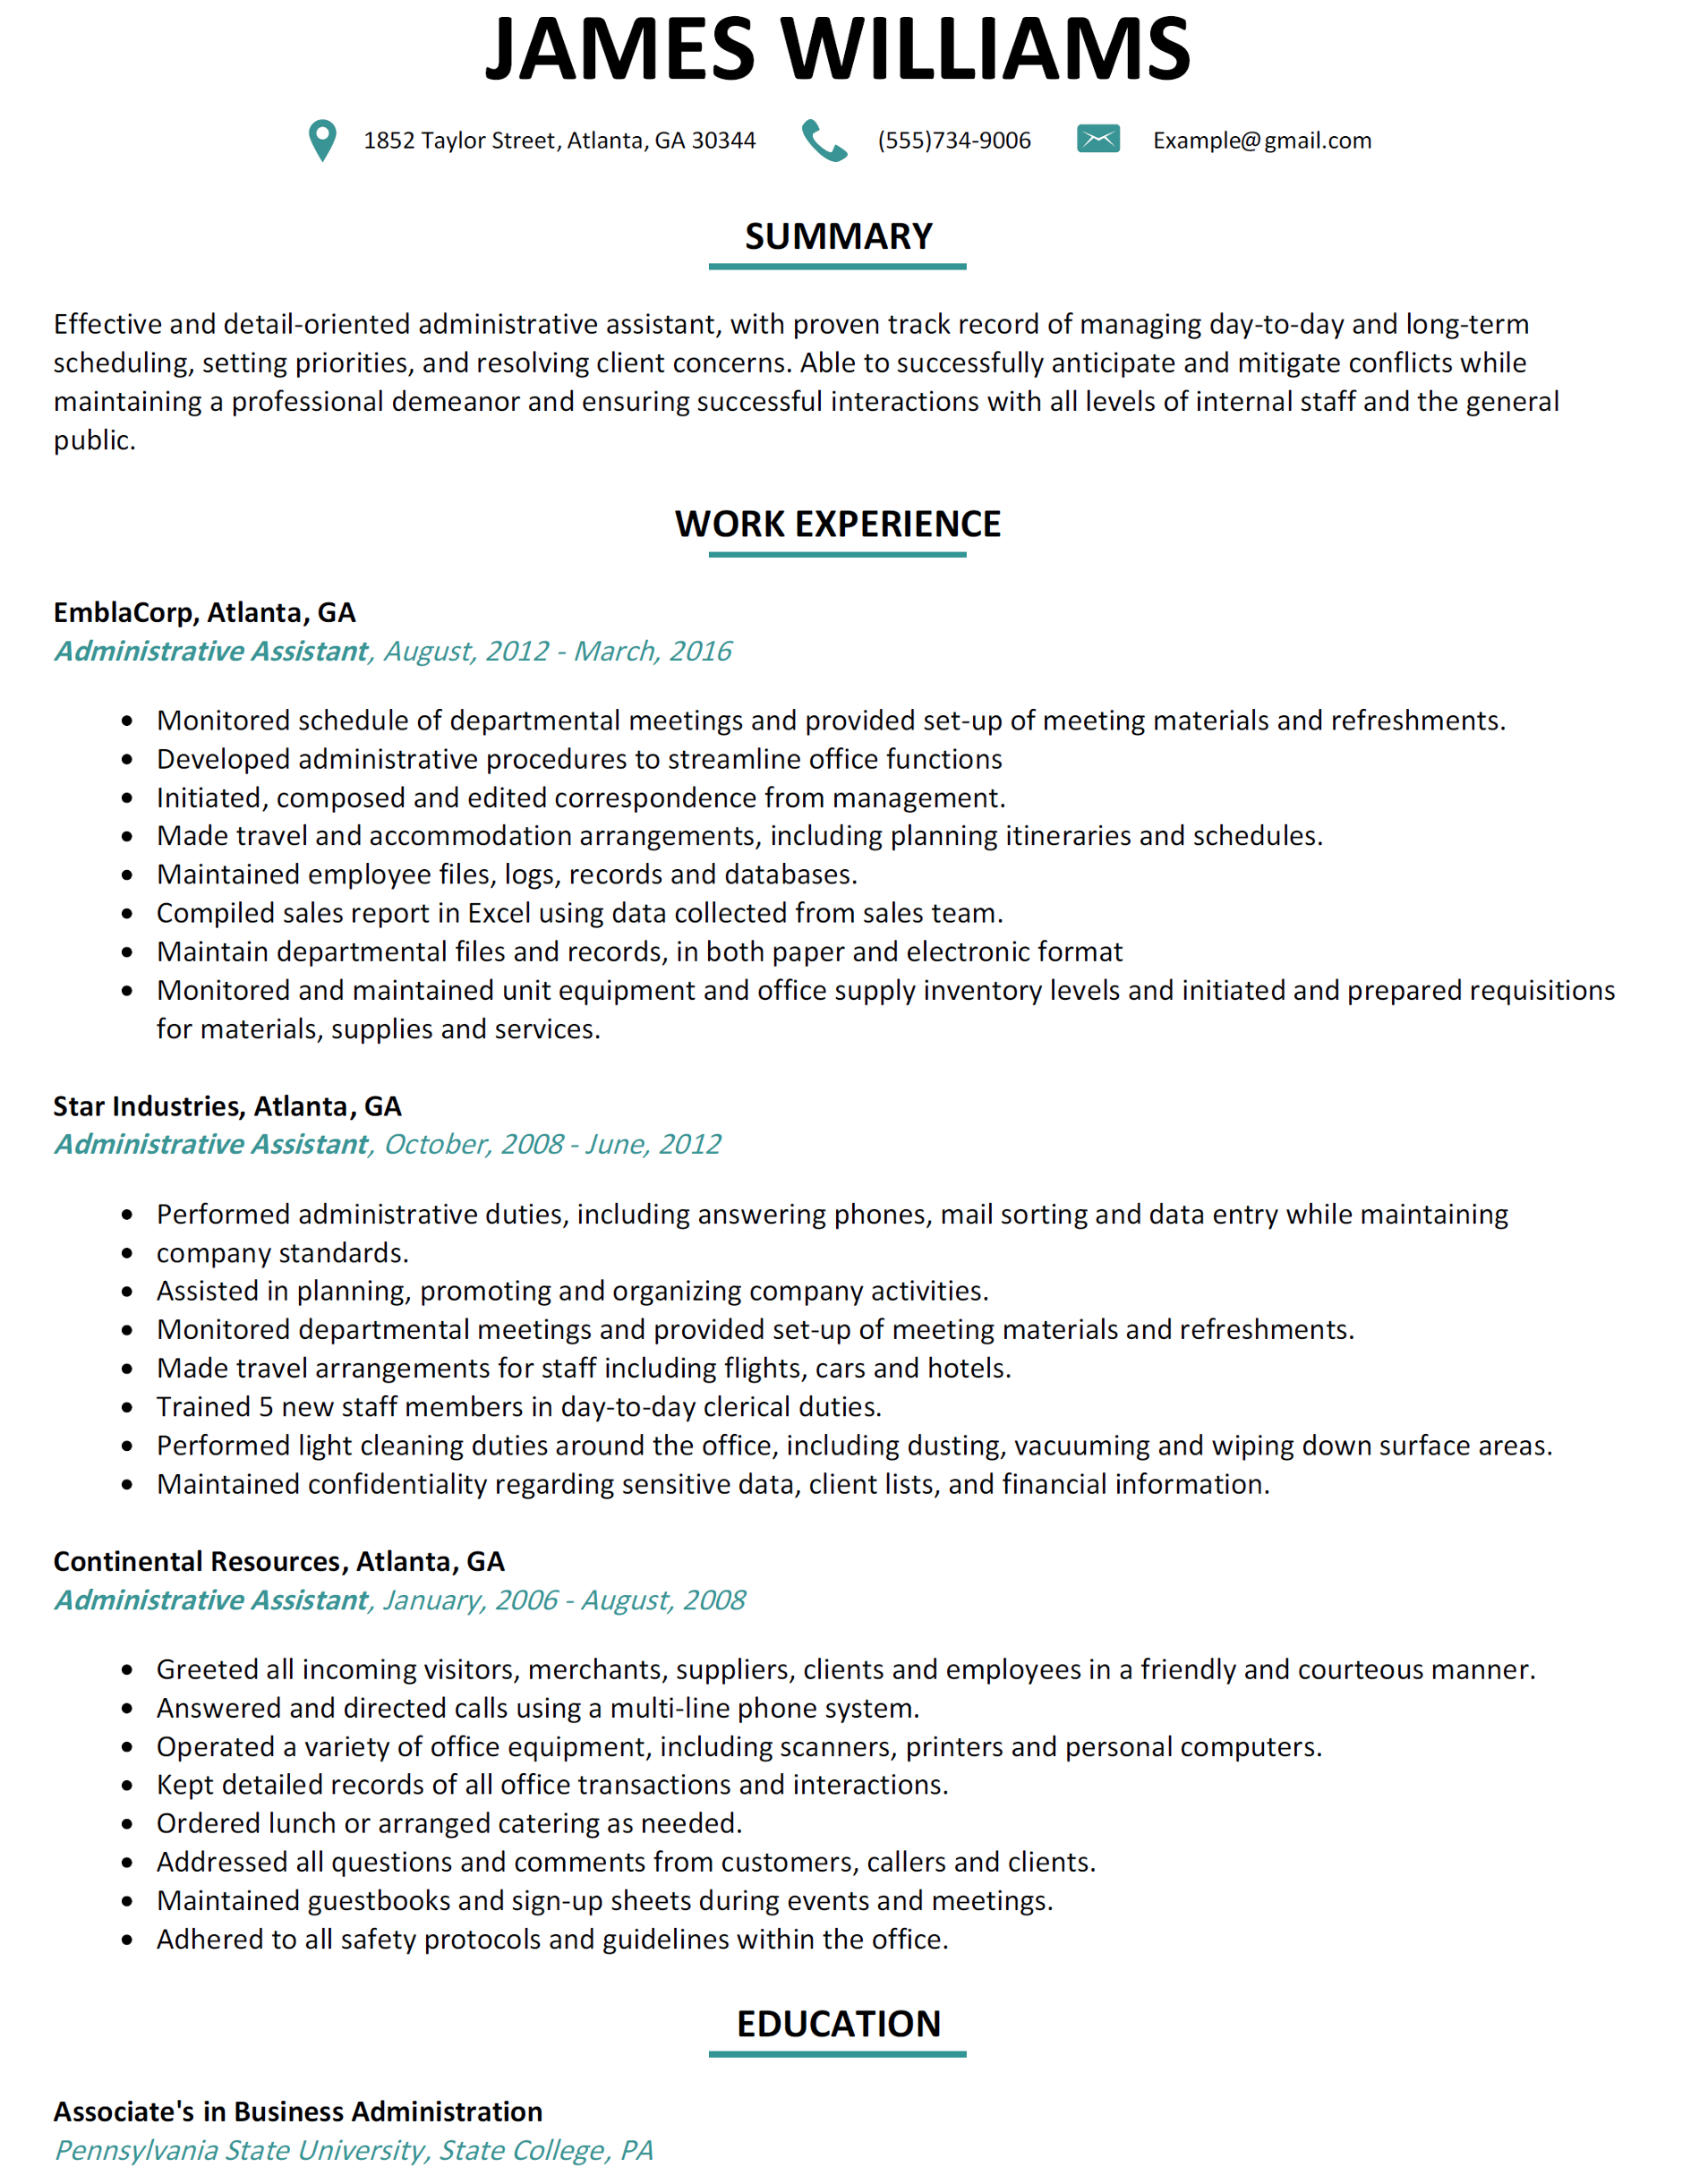 Professional Resume for Administrative assistant Bongdaao